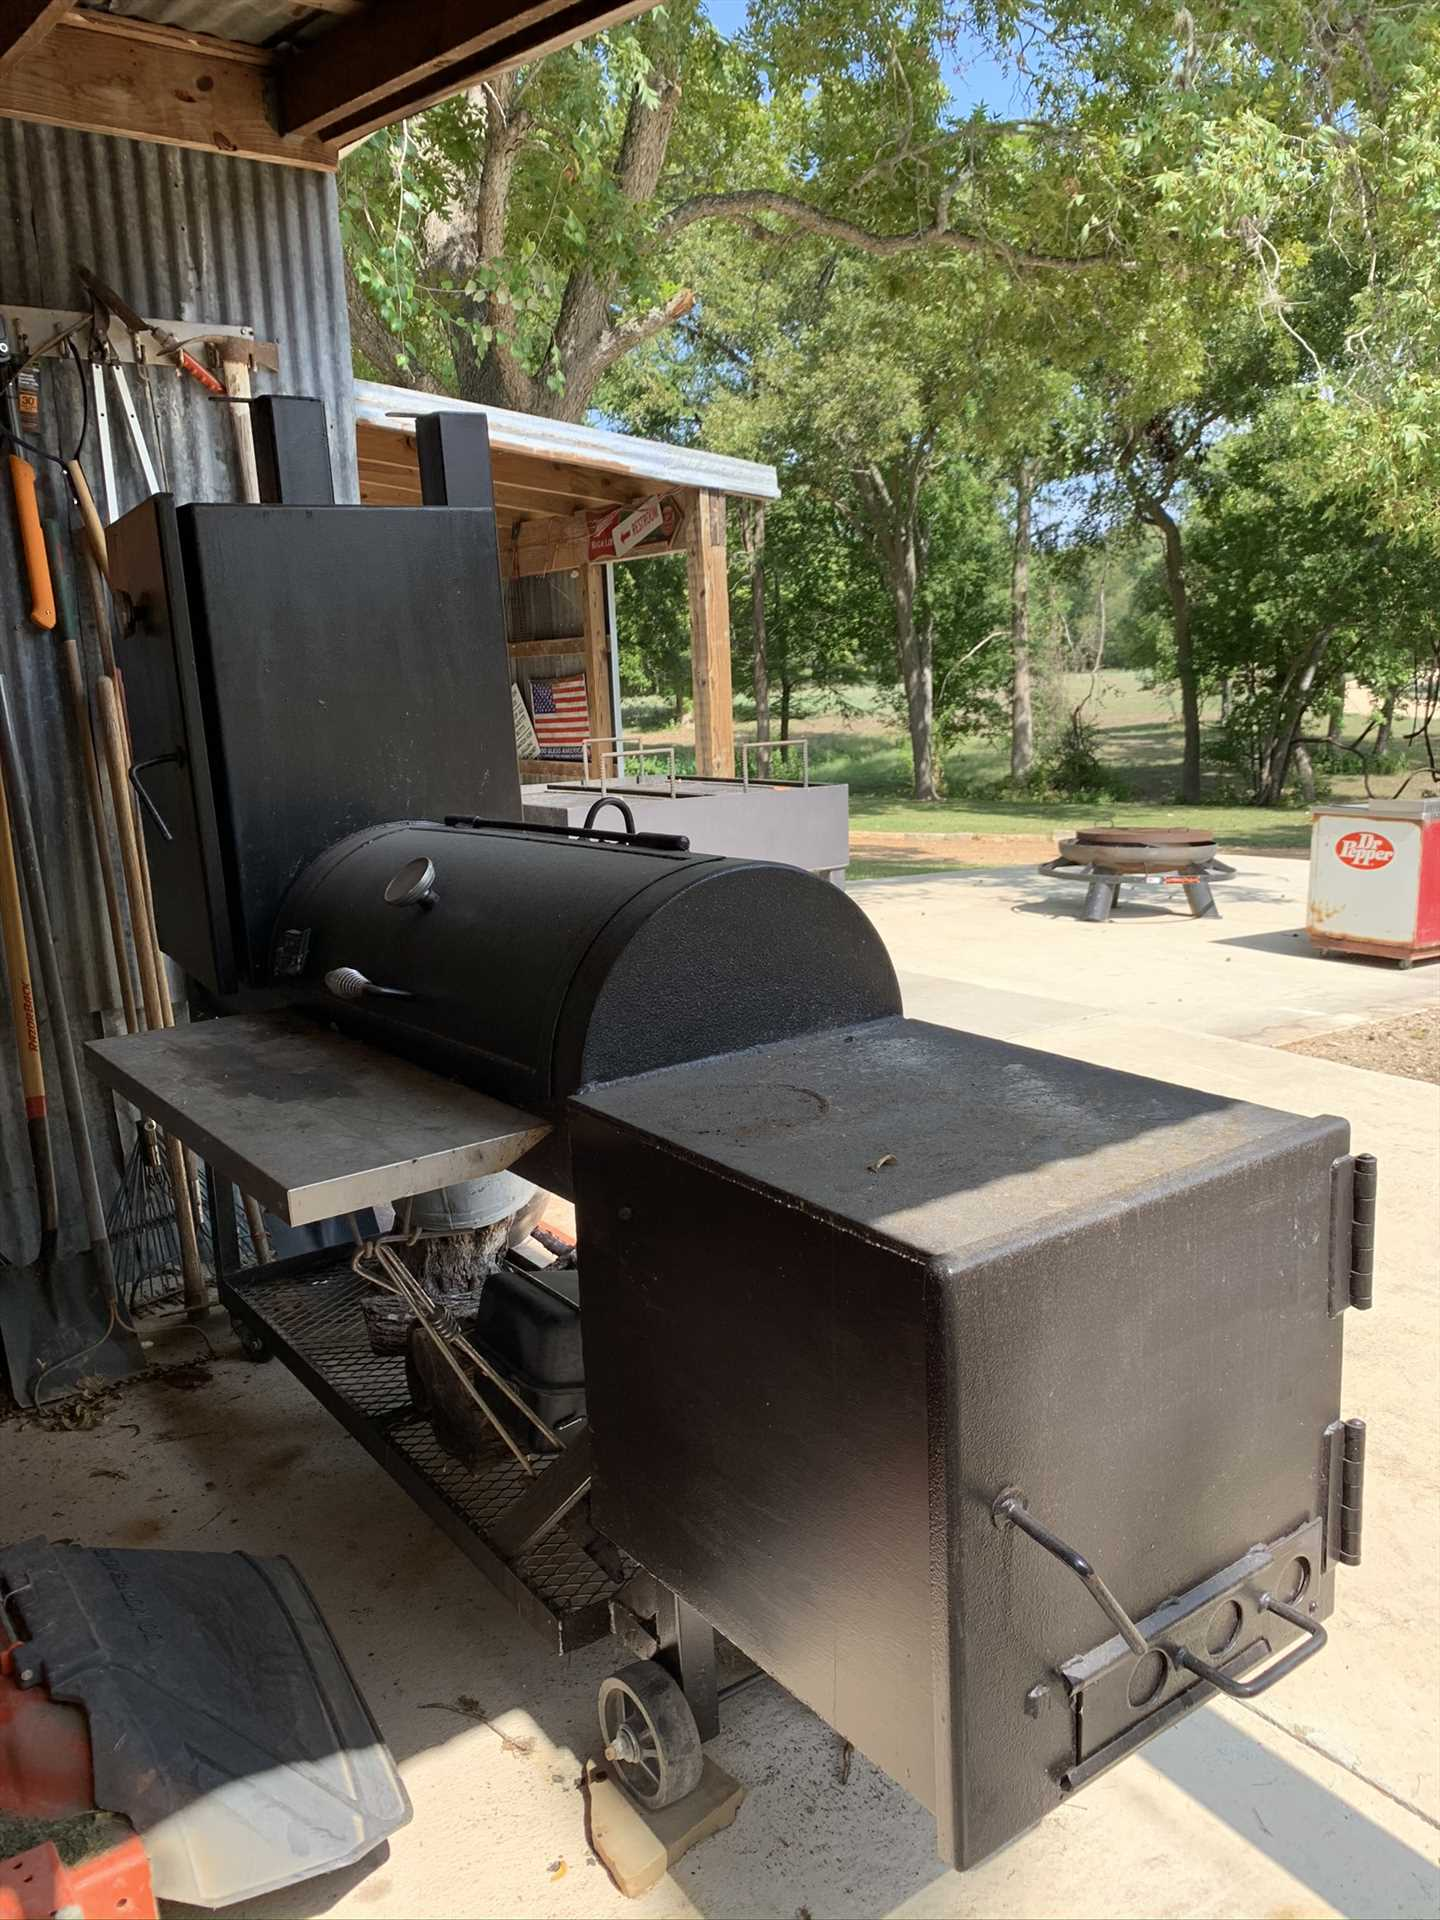 The pavilion also has a big smoker. It's a great place for the BBQ champions in your group to kick it up a notch!